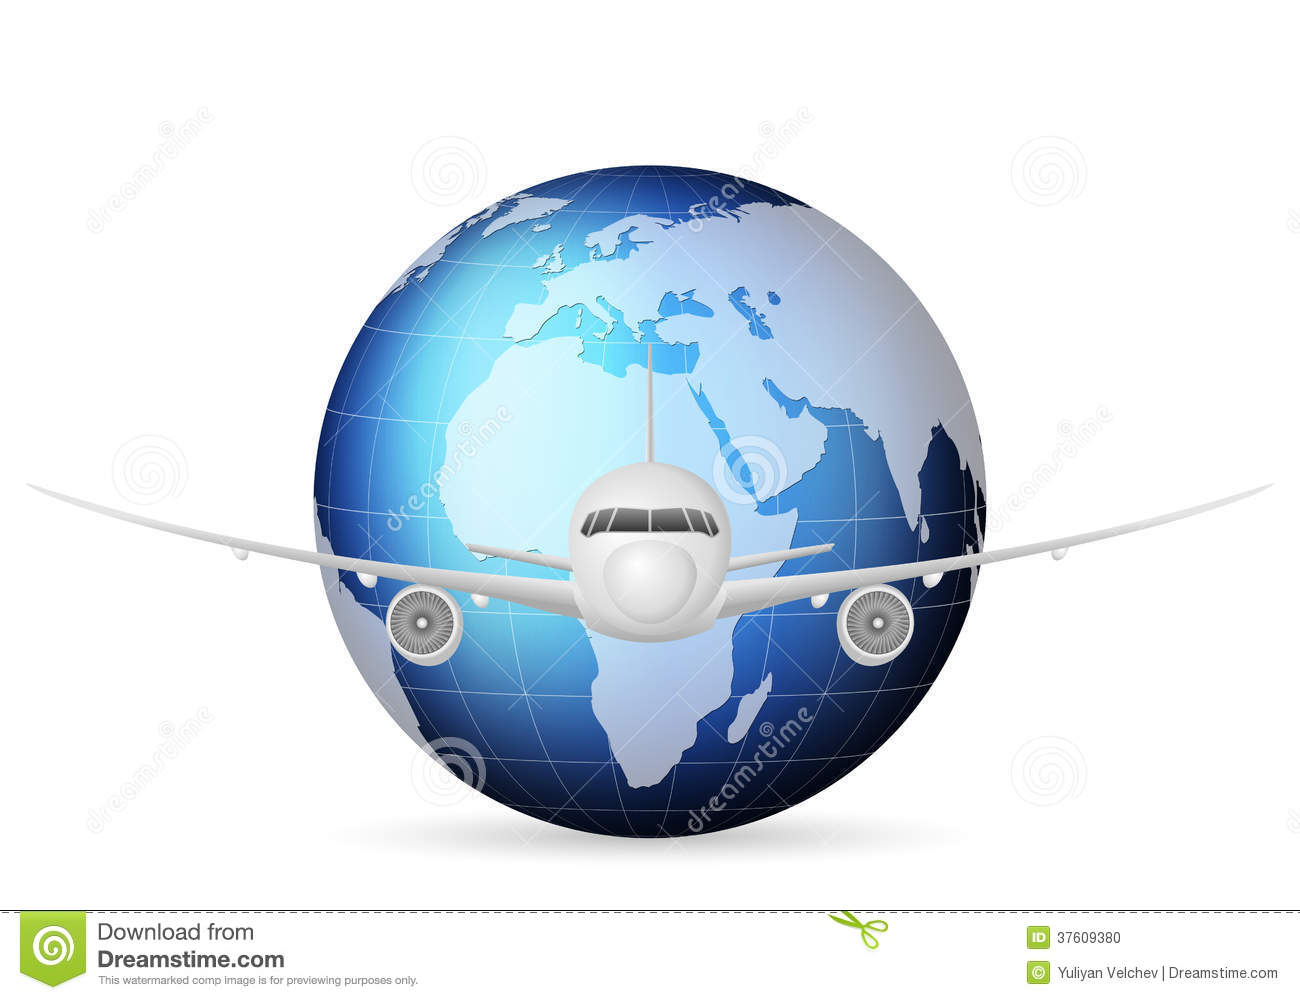 World Globe And Airplane Stock Photo - Image: 37609380